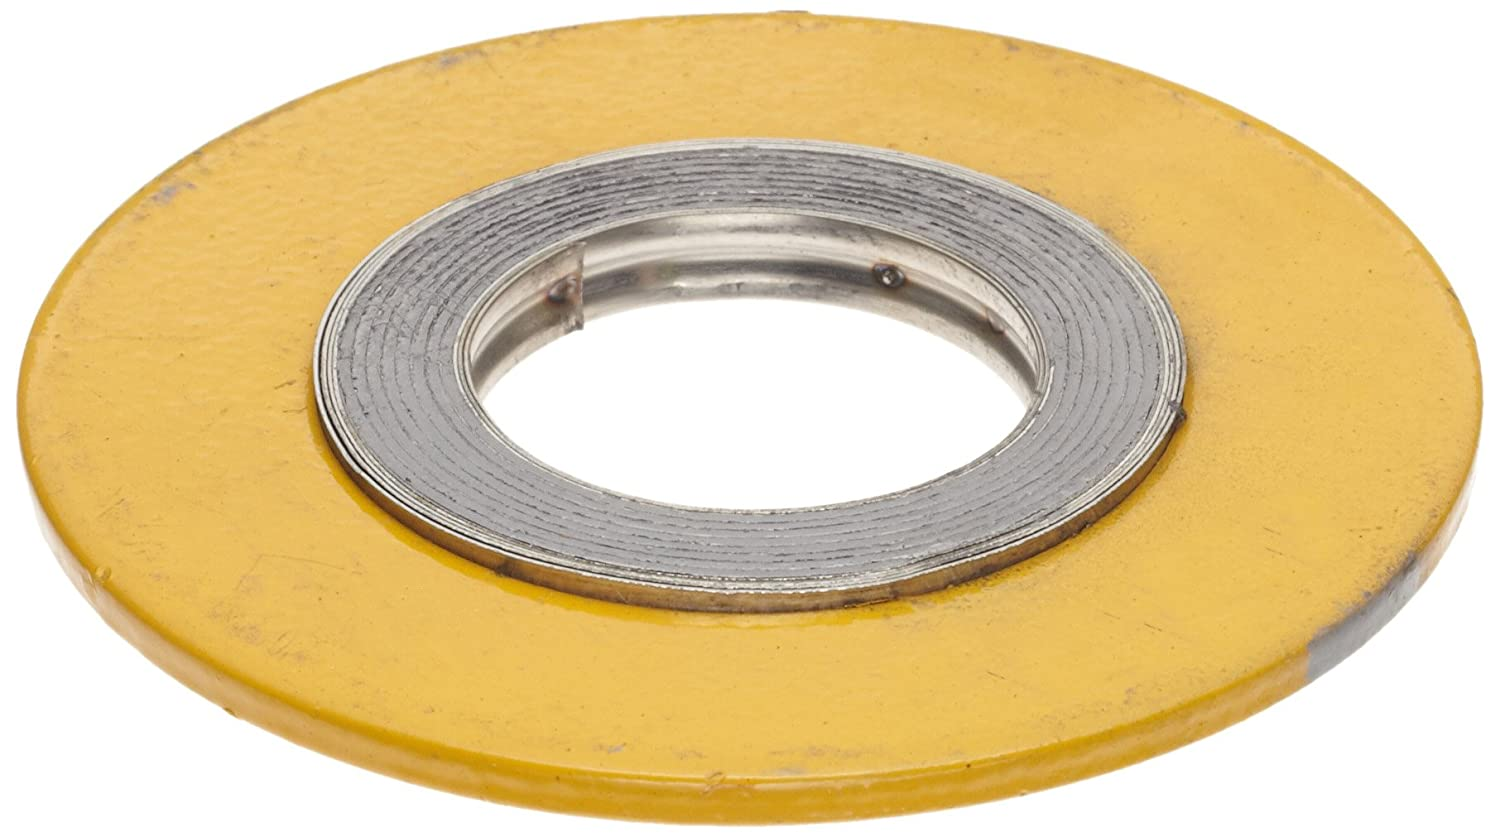 Metal Reinforced Pure Graphite Flange Gasket Fits Class 300 Flange 2-7//8 OD Pack of 1 1-1//4 ID 1 Pipe Size Ring